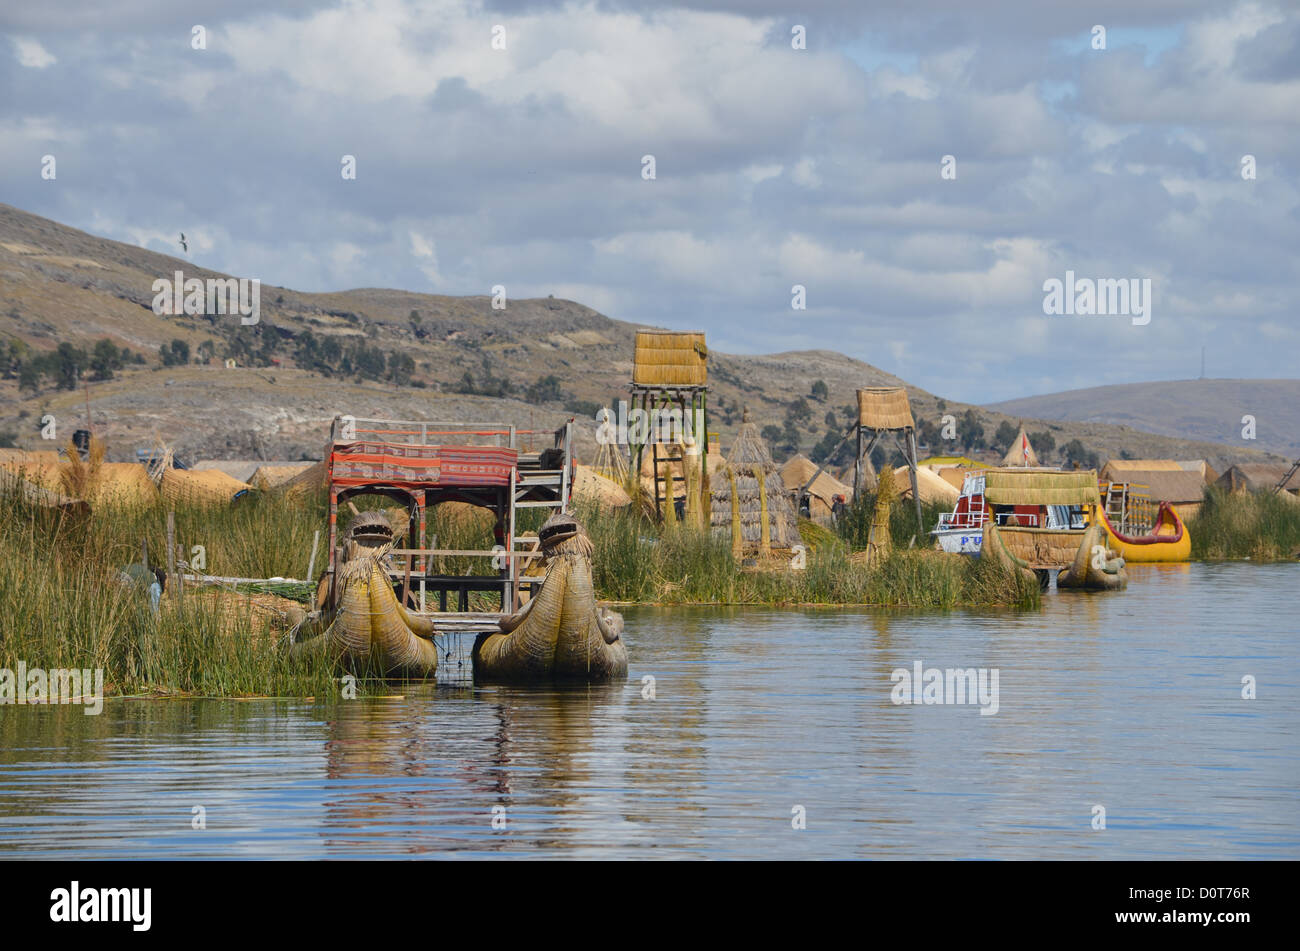 Traditional Tortora reed boat on Lake Titicaca, Peru - Stock Image